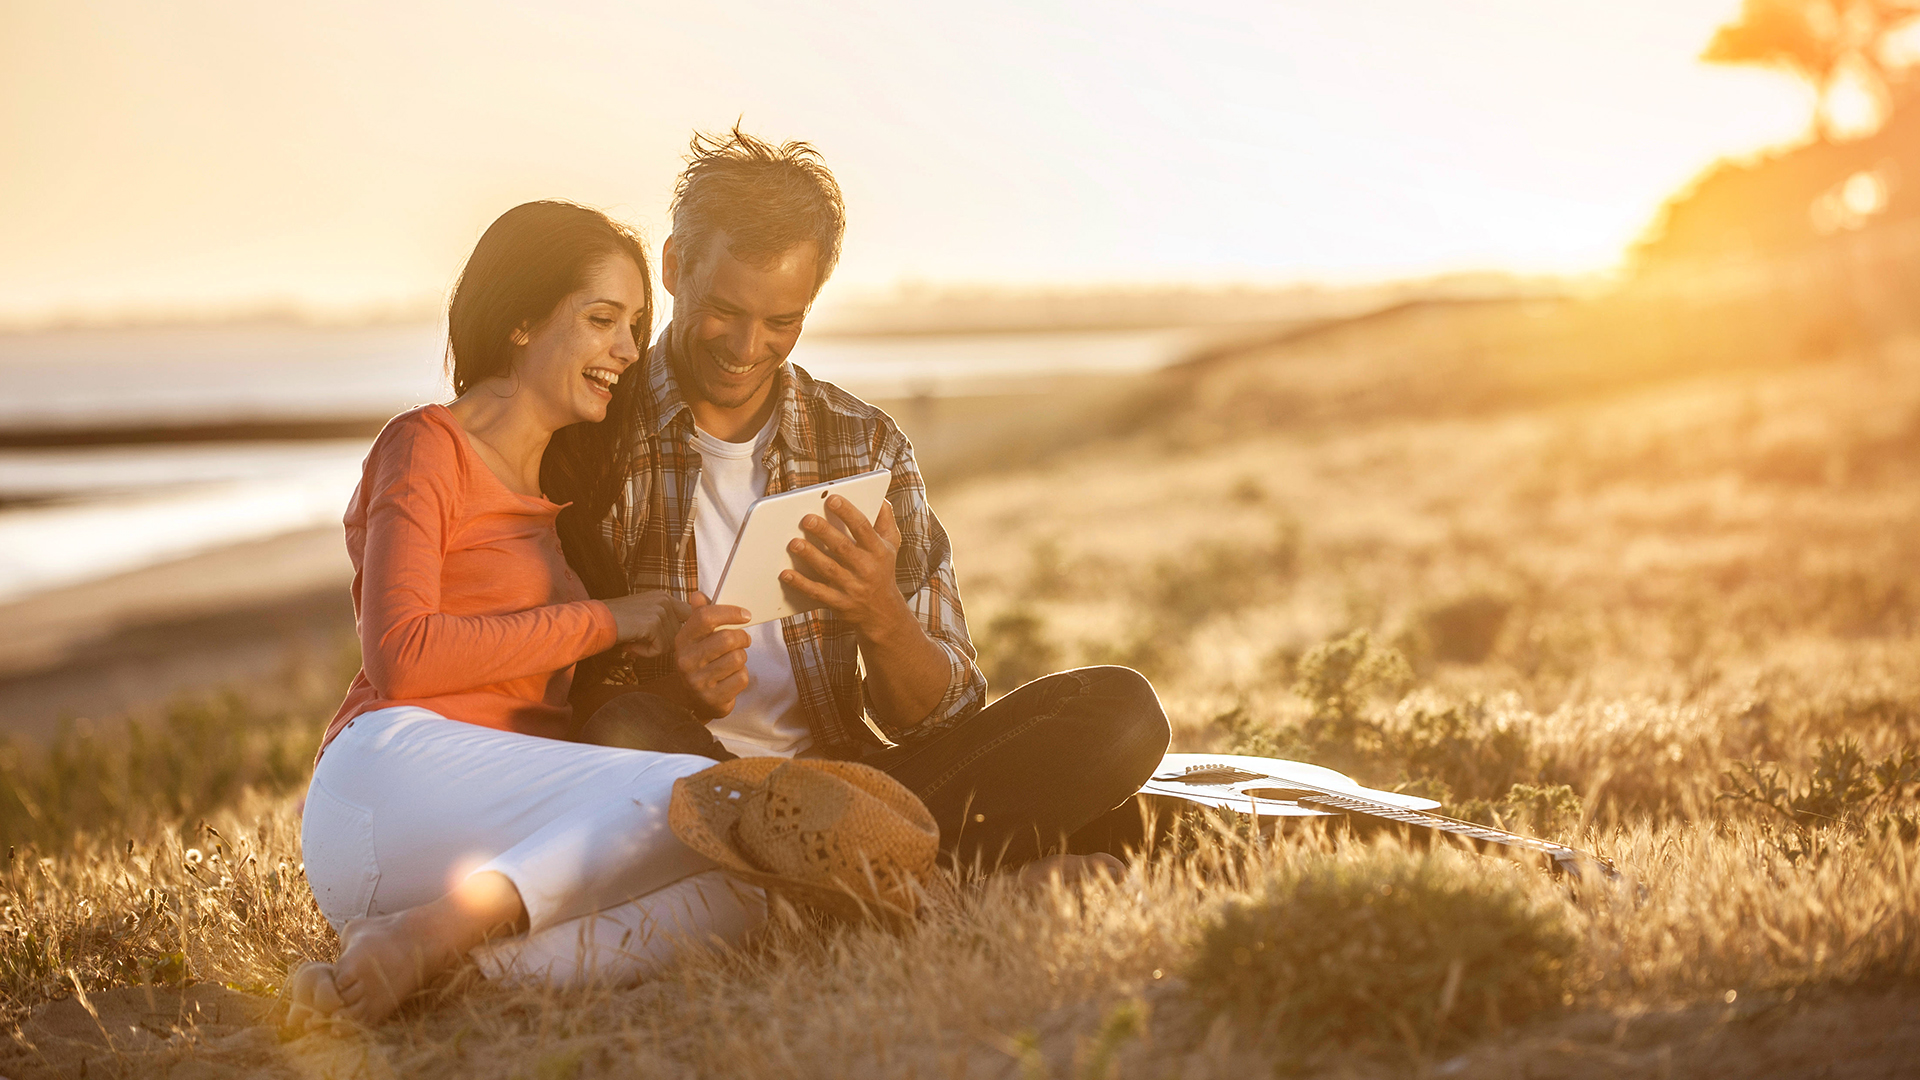 Dating advice for the newly single or divorcee